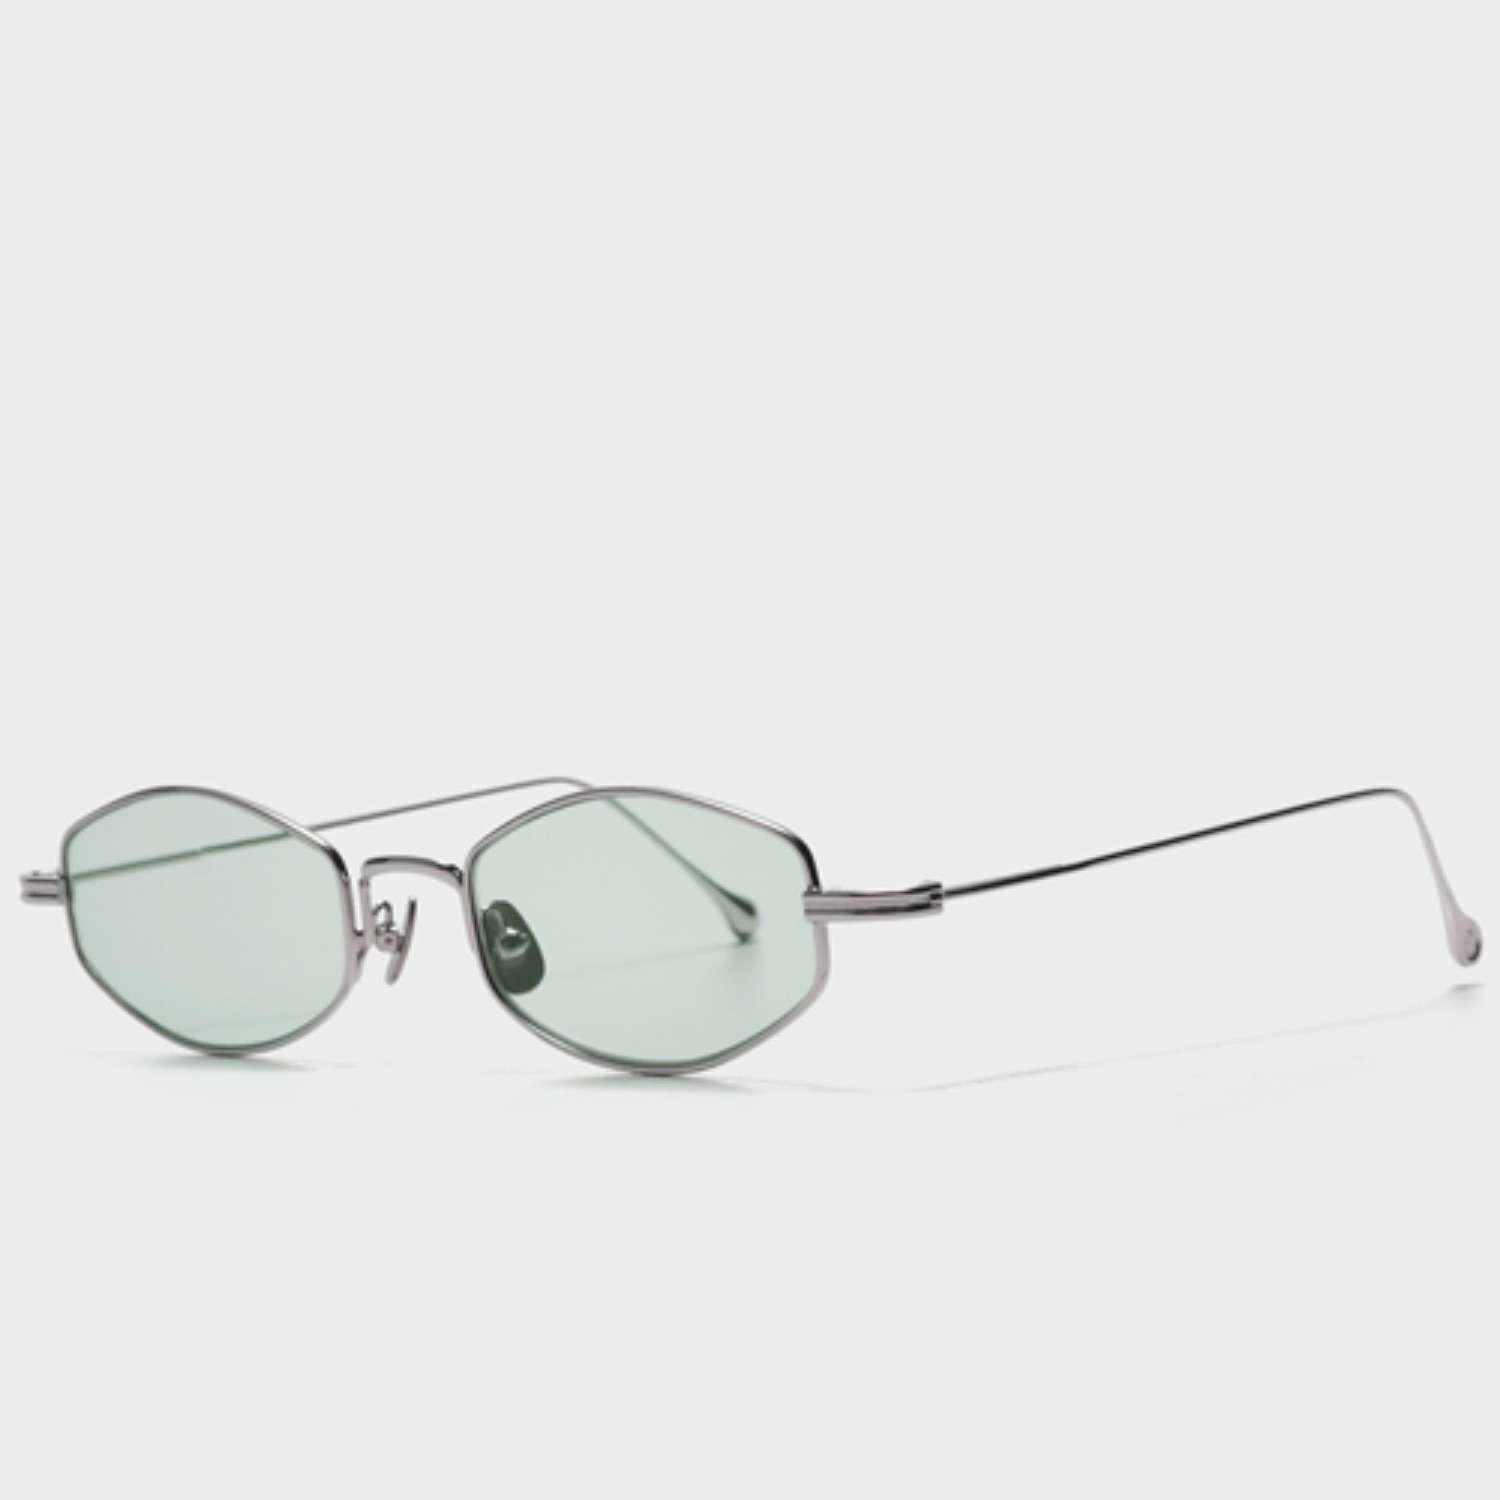 스틸러 CARTER STL03 12K WHITE GOLD (Green Tint Lens)